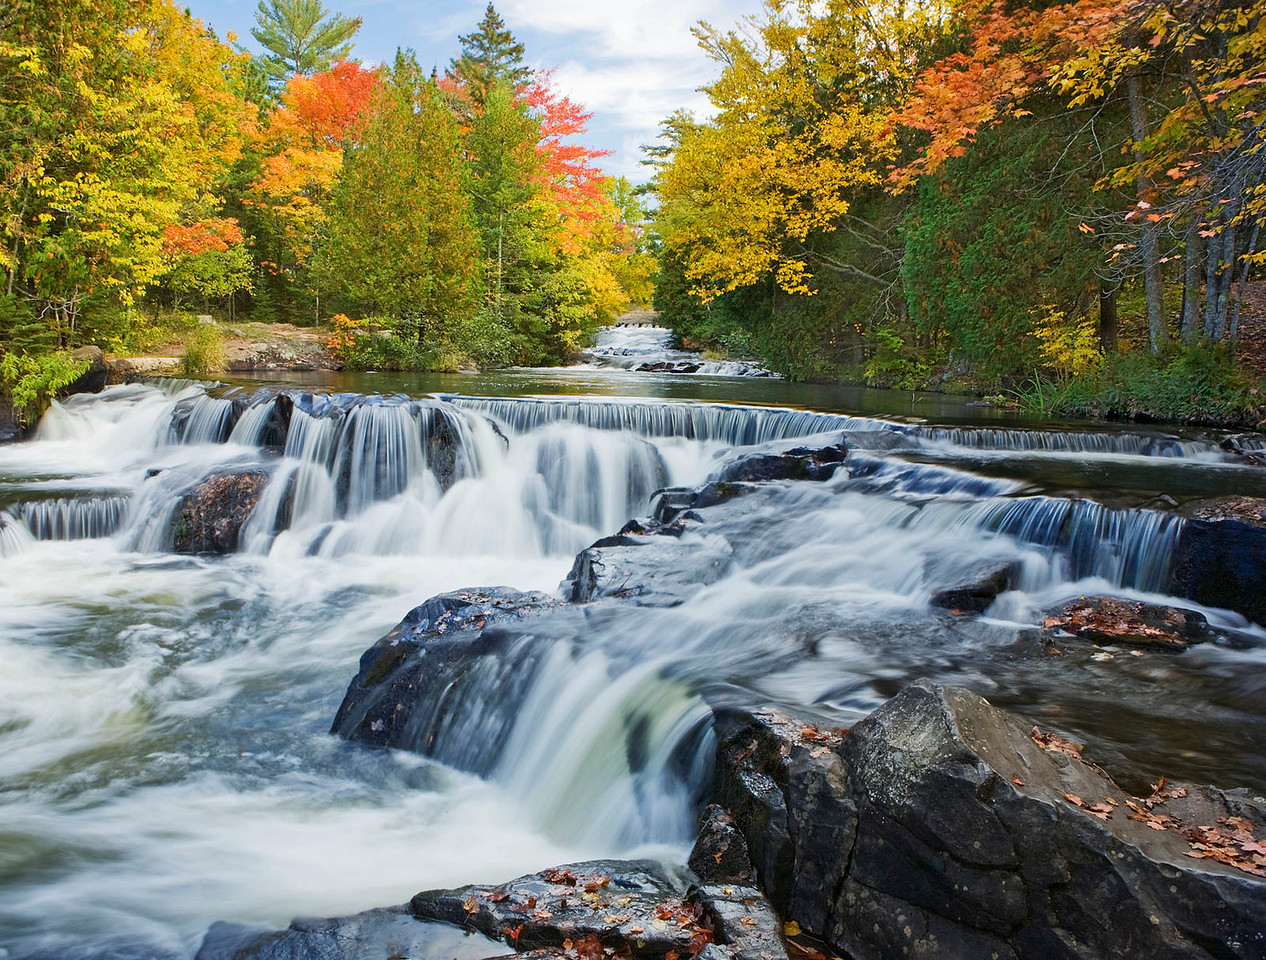 Bondfalls, Michigan